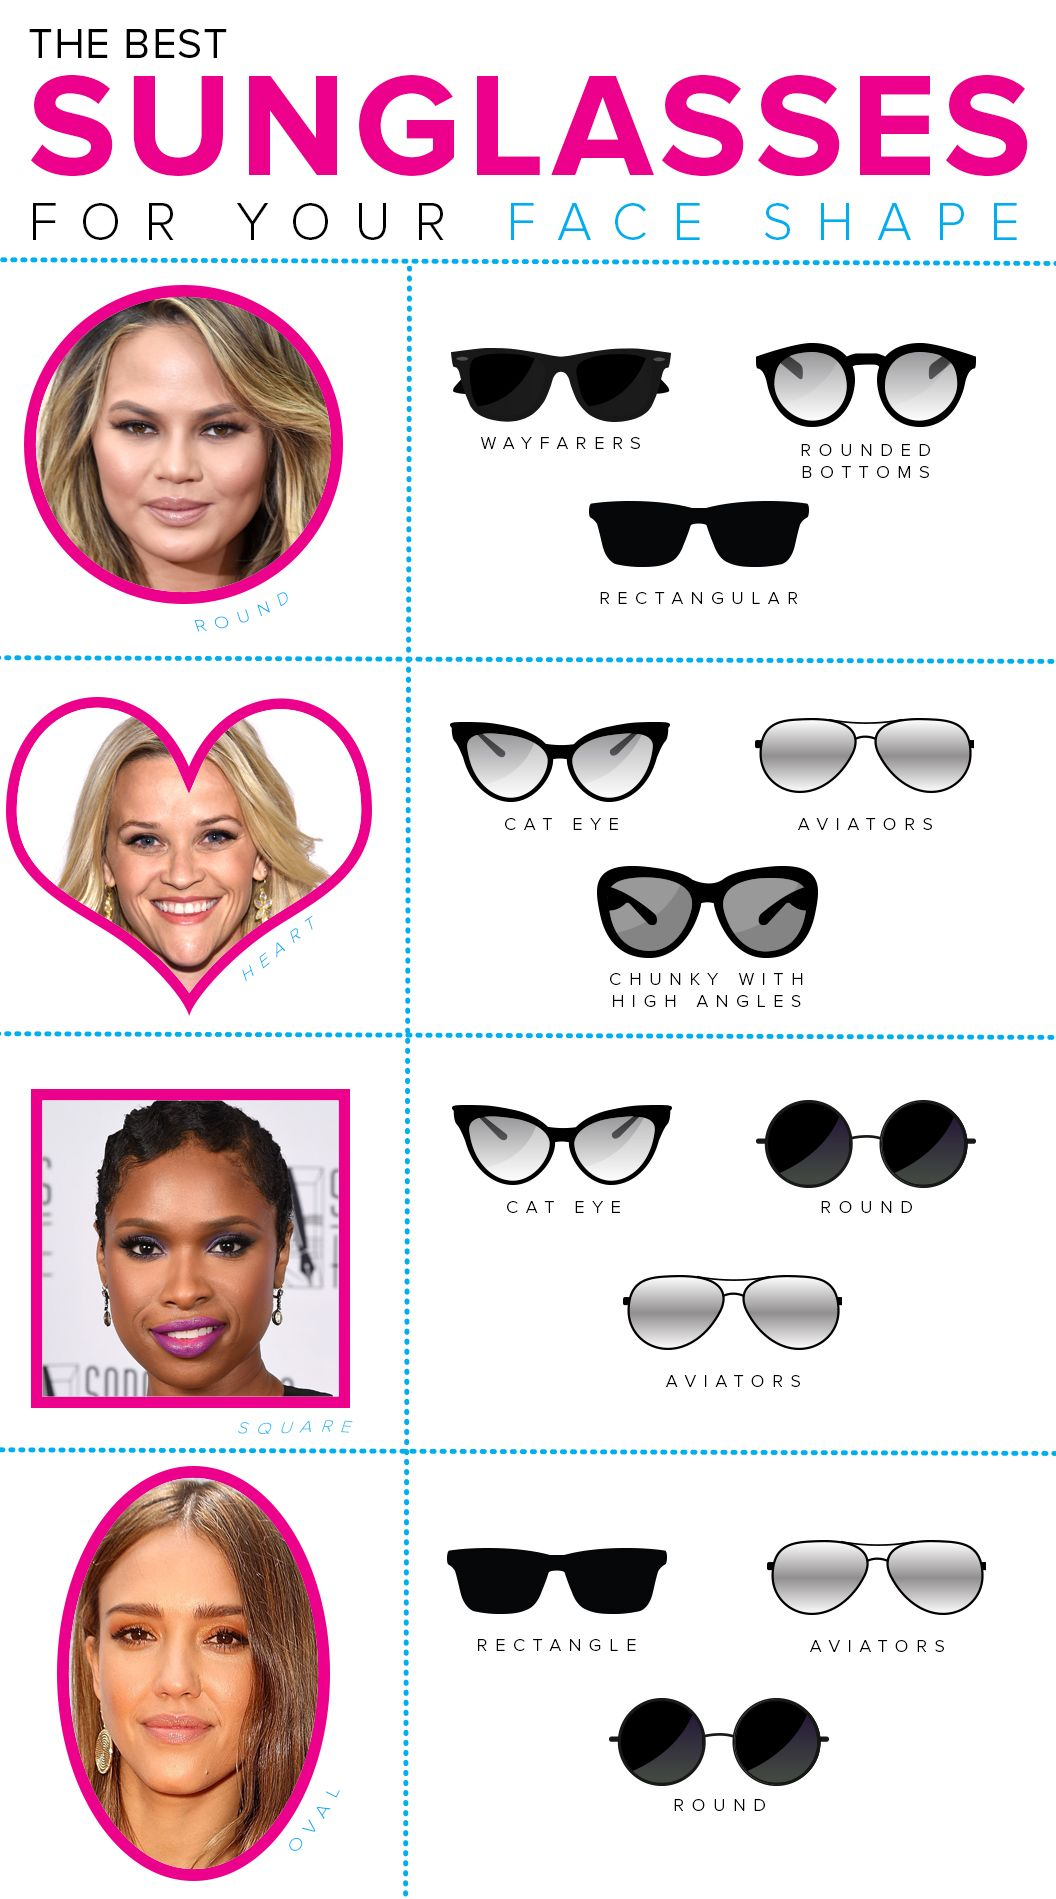 Yes you can rock new shades 15 sunglasses styles to fit your face